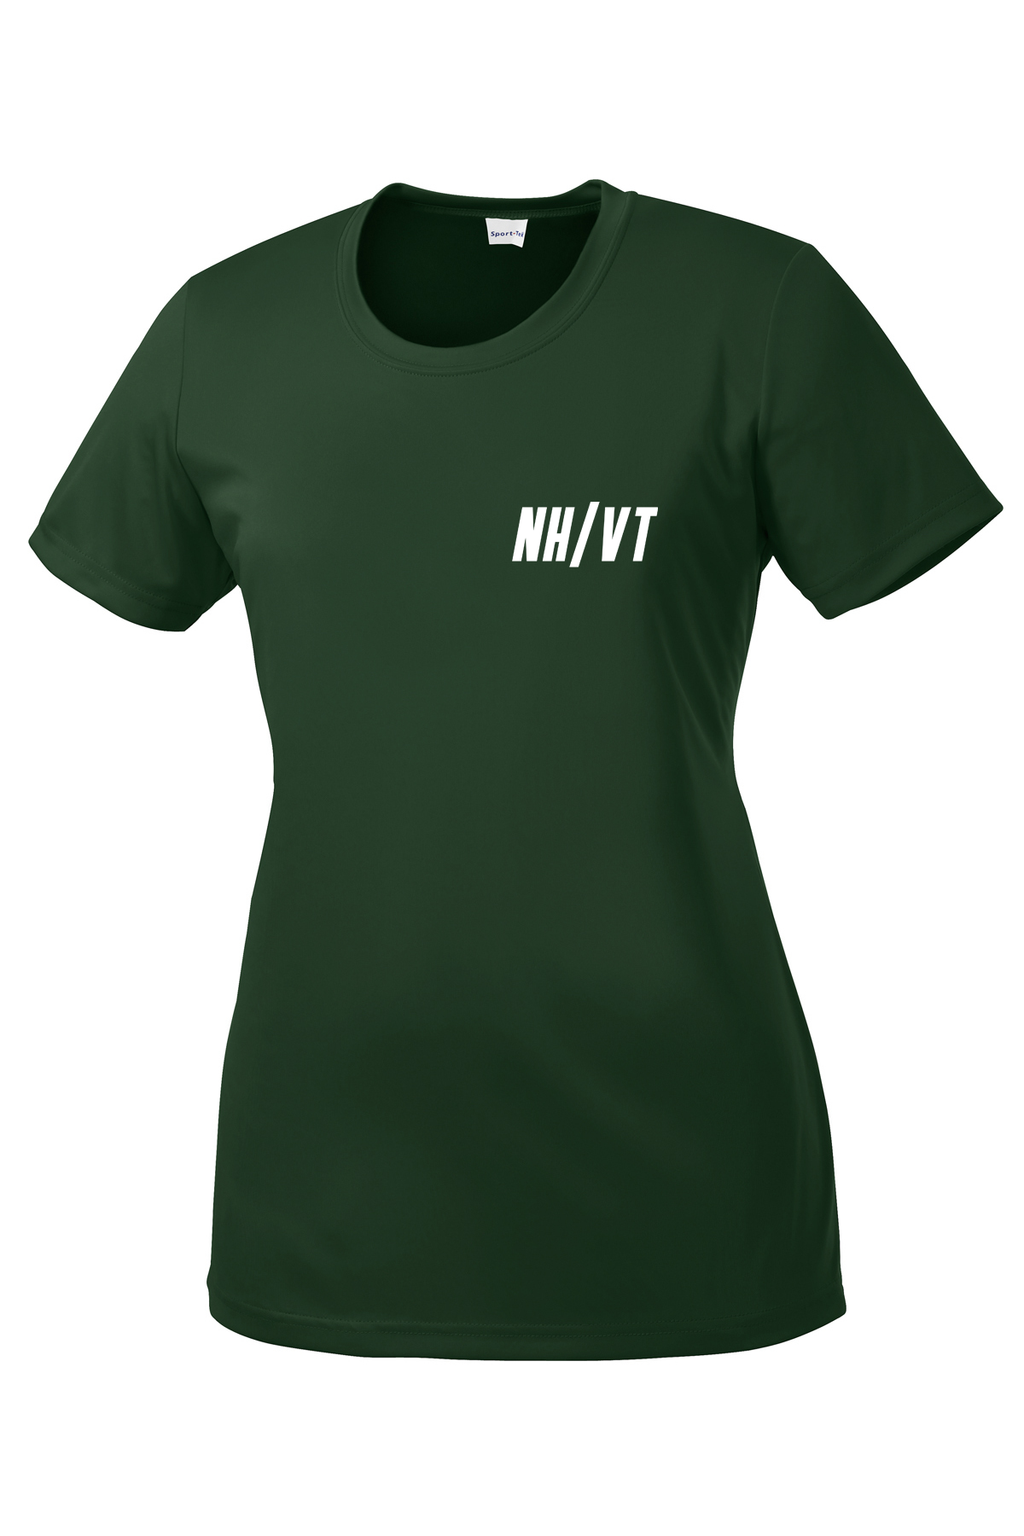 NH/VT Lacrosse Women's Performance Tee